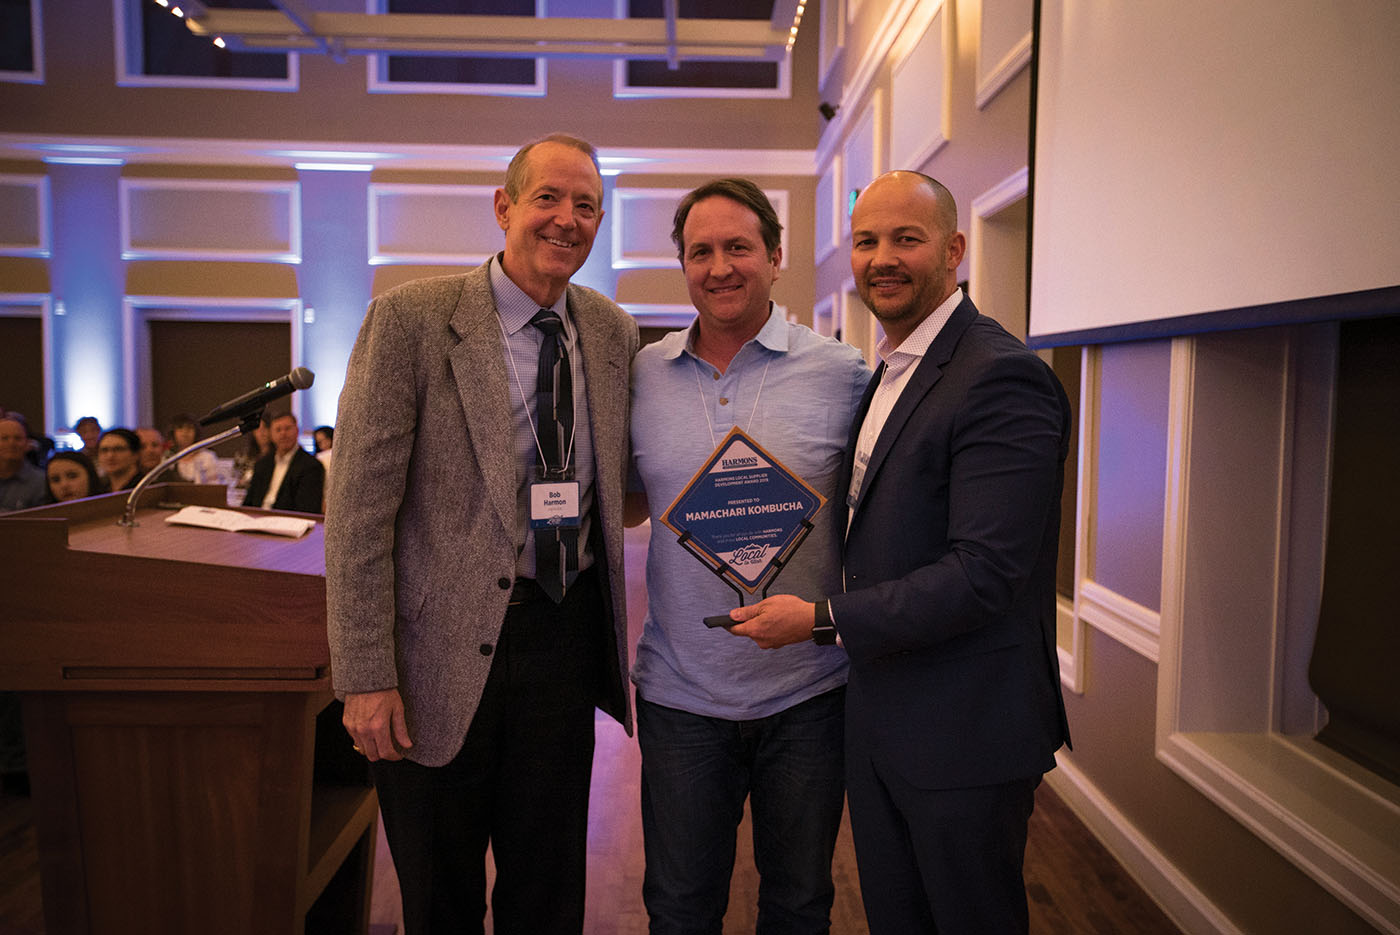 (L–R) Bob Harmon, Ben Phillips from Mamachari Kombucha and Todd Jensen at the 2019 awards ceremony.